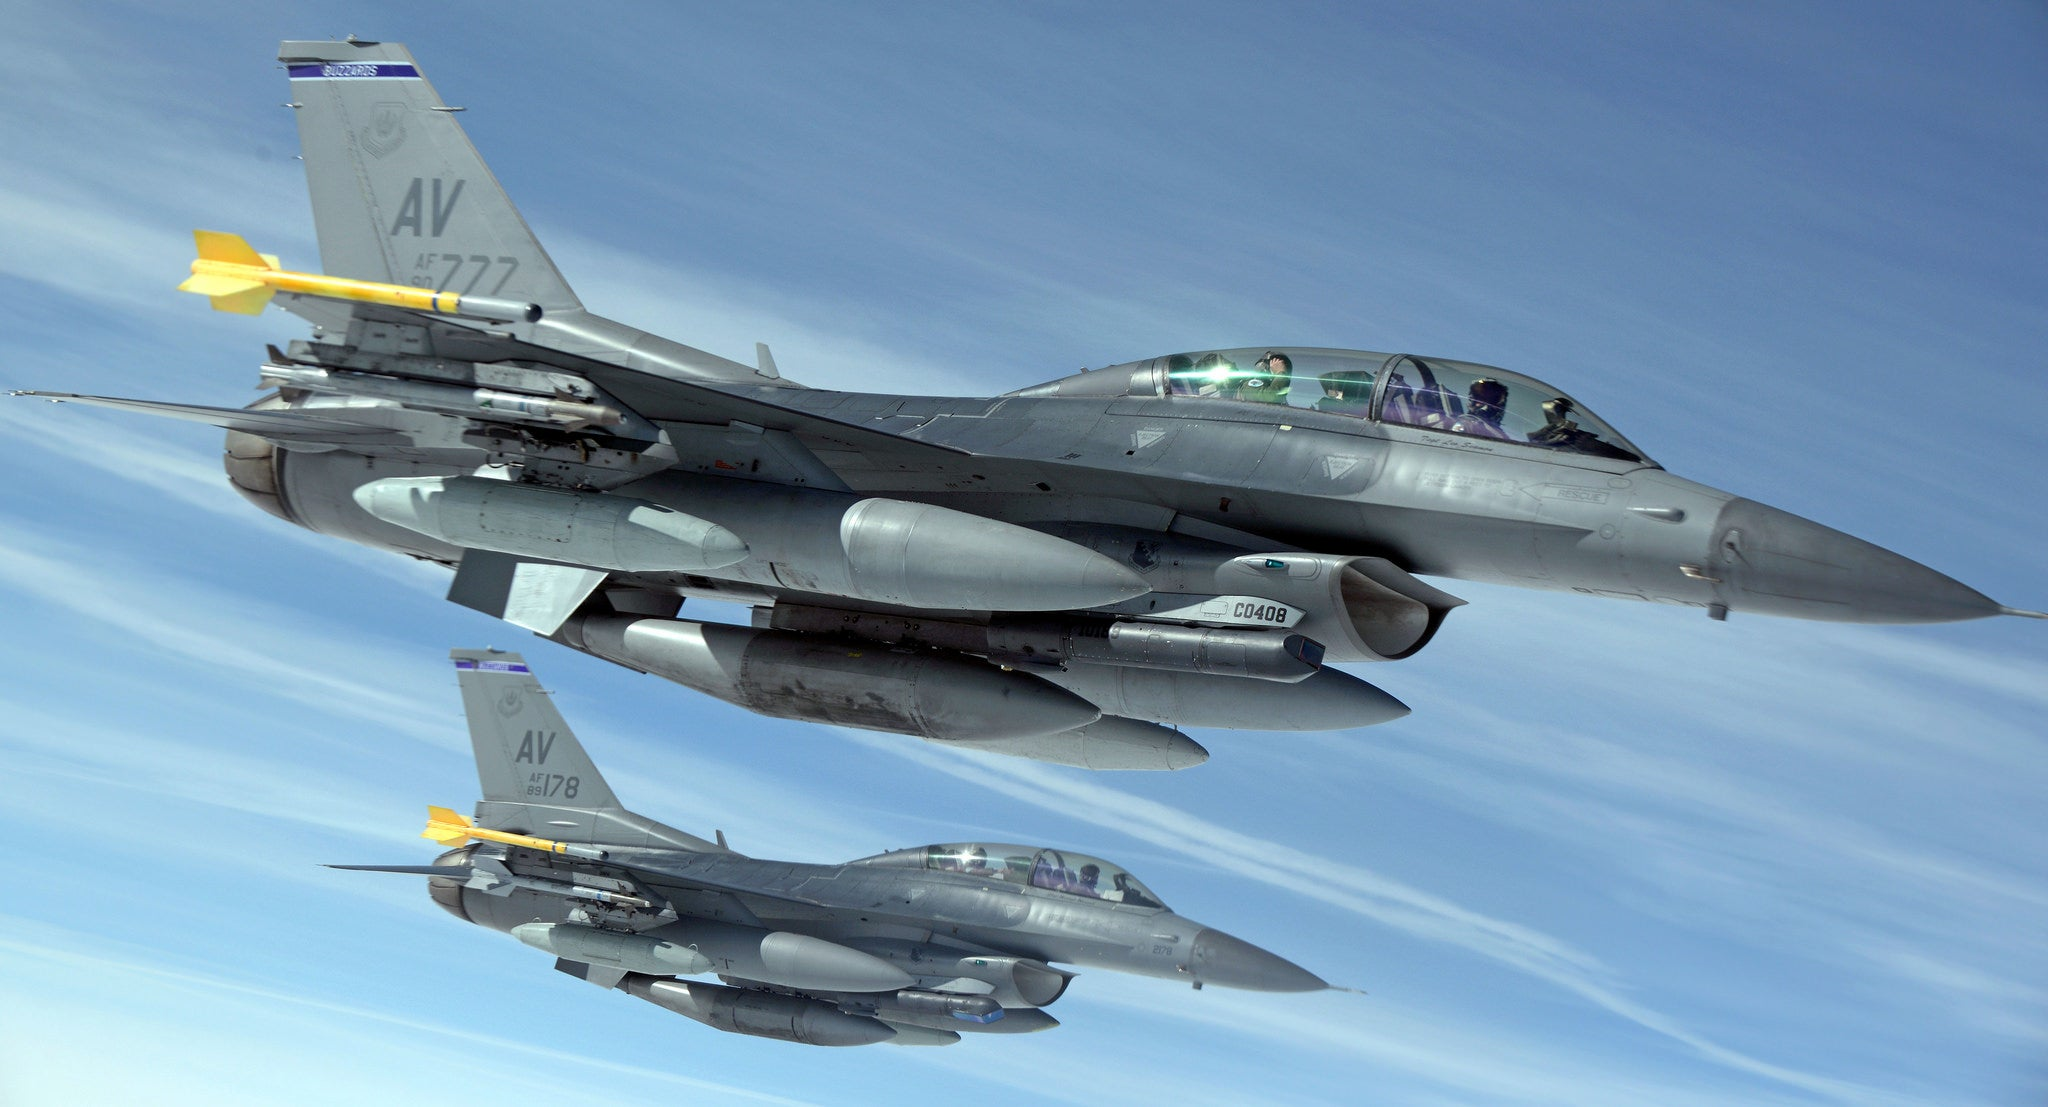 This photo of flying F-16s looks so perfect I can't believe it's real